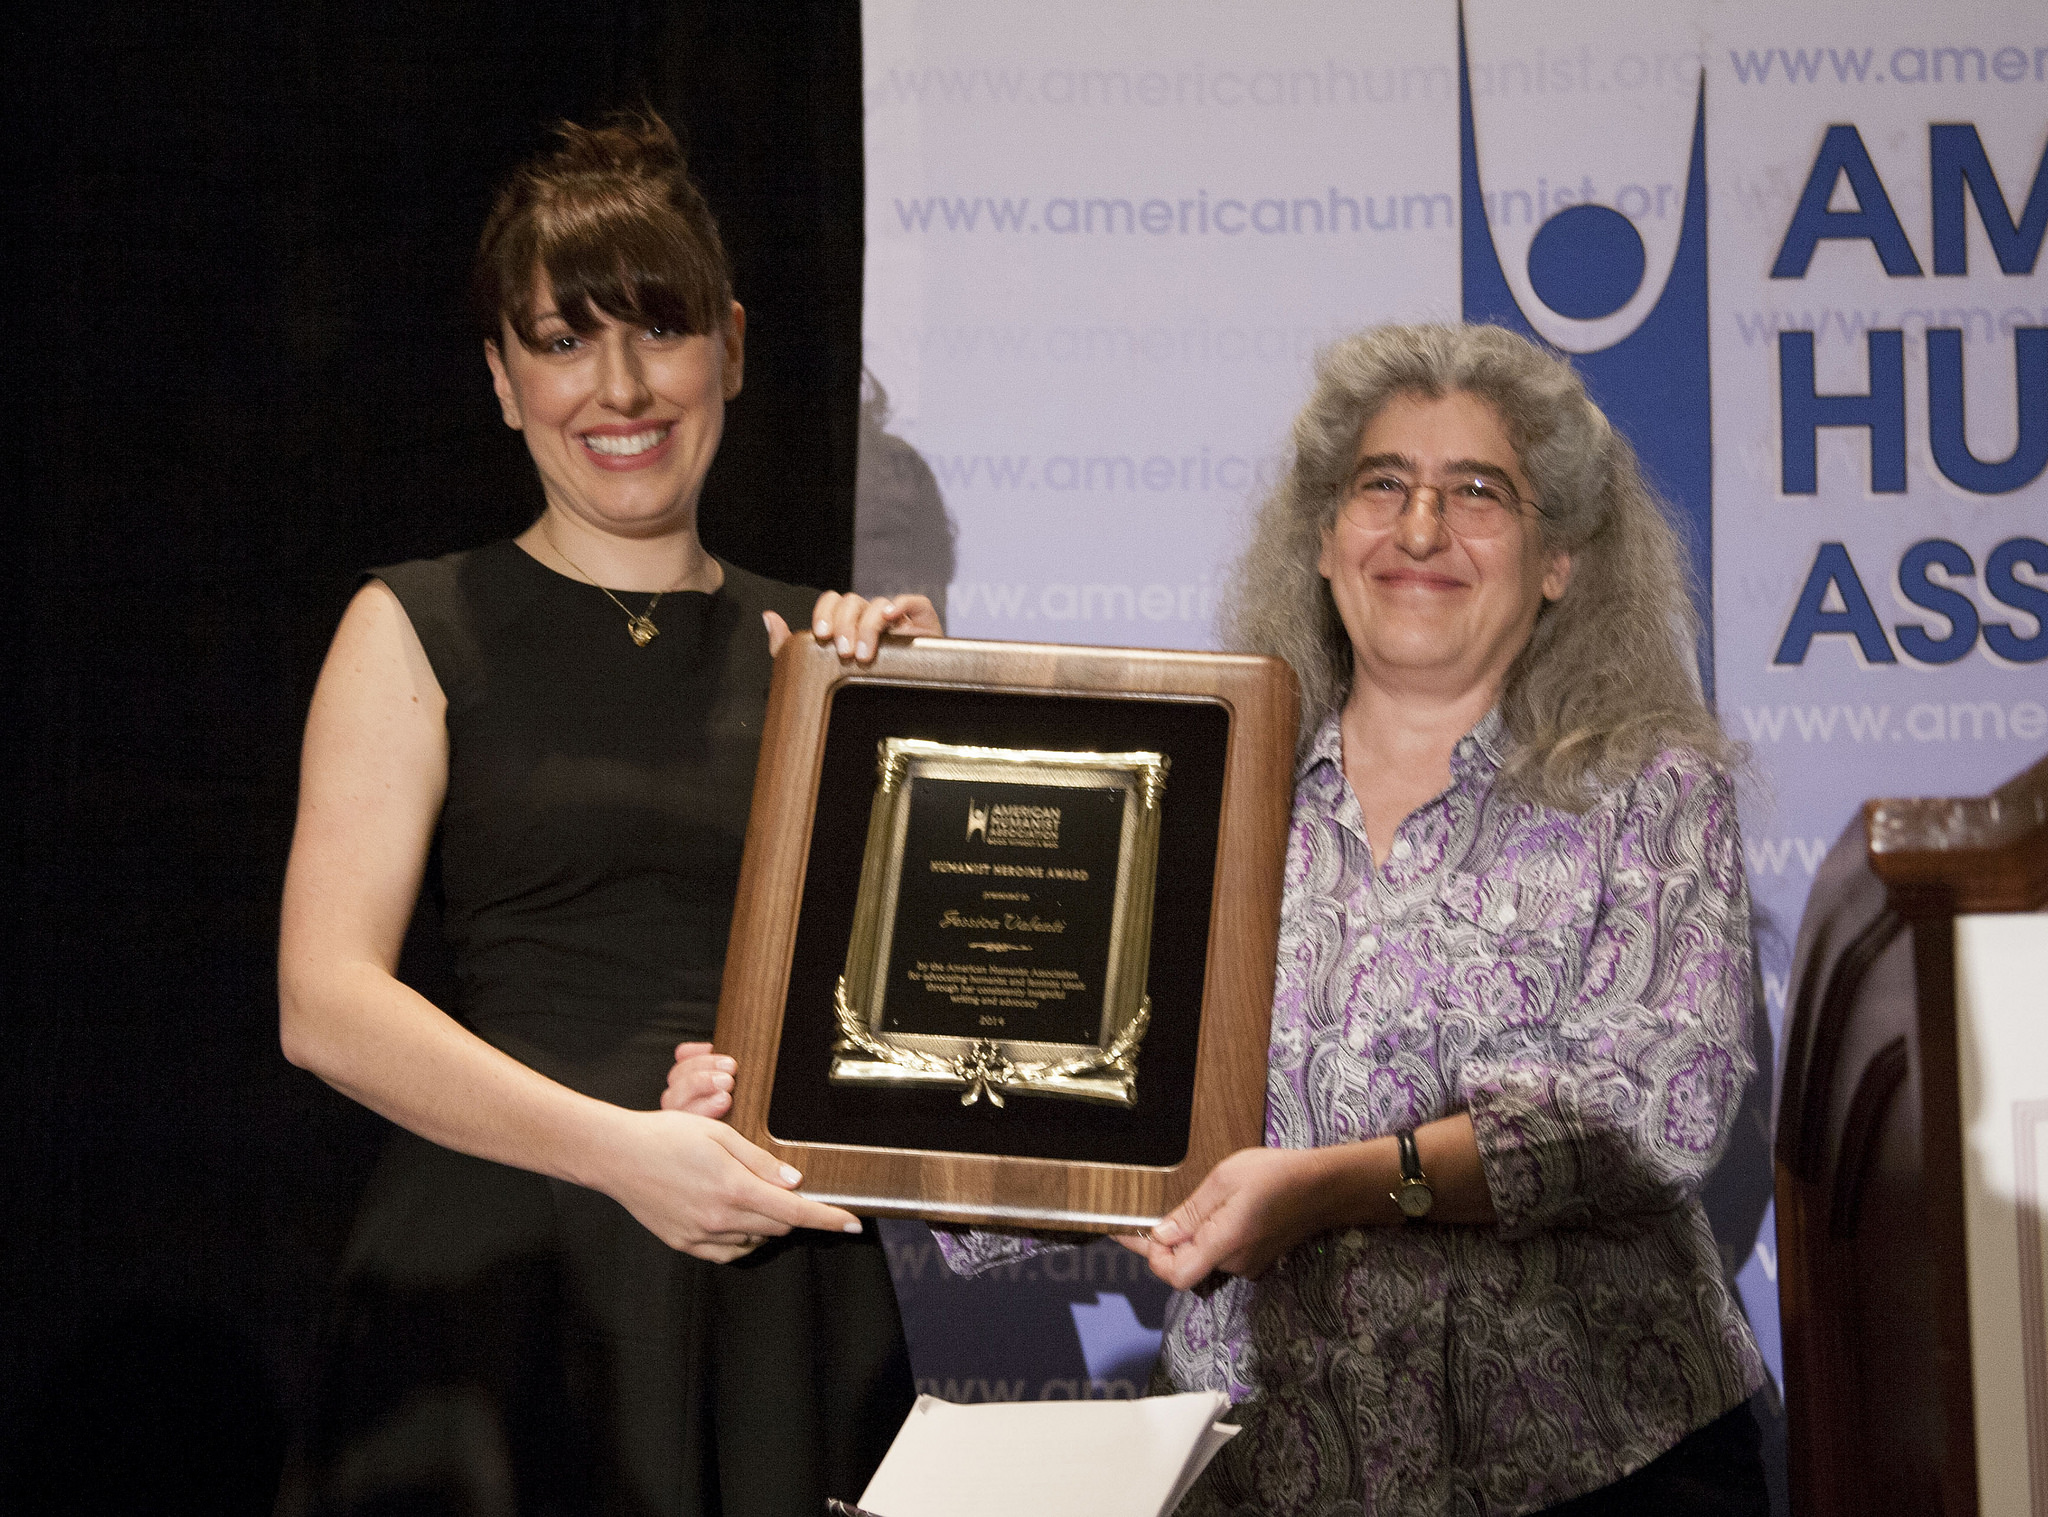 Jessica Valenti receives the Humanist Heroine Award from Zelda Gatuskin